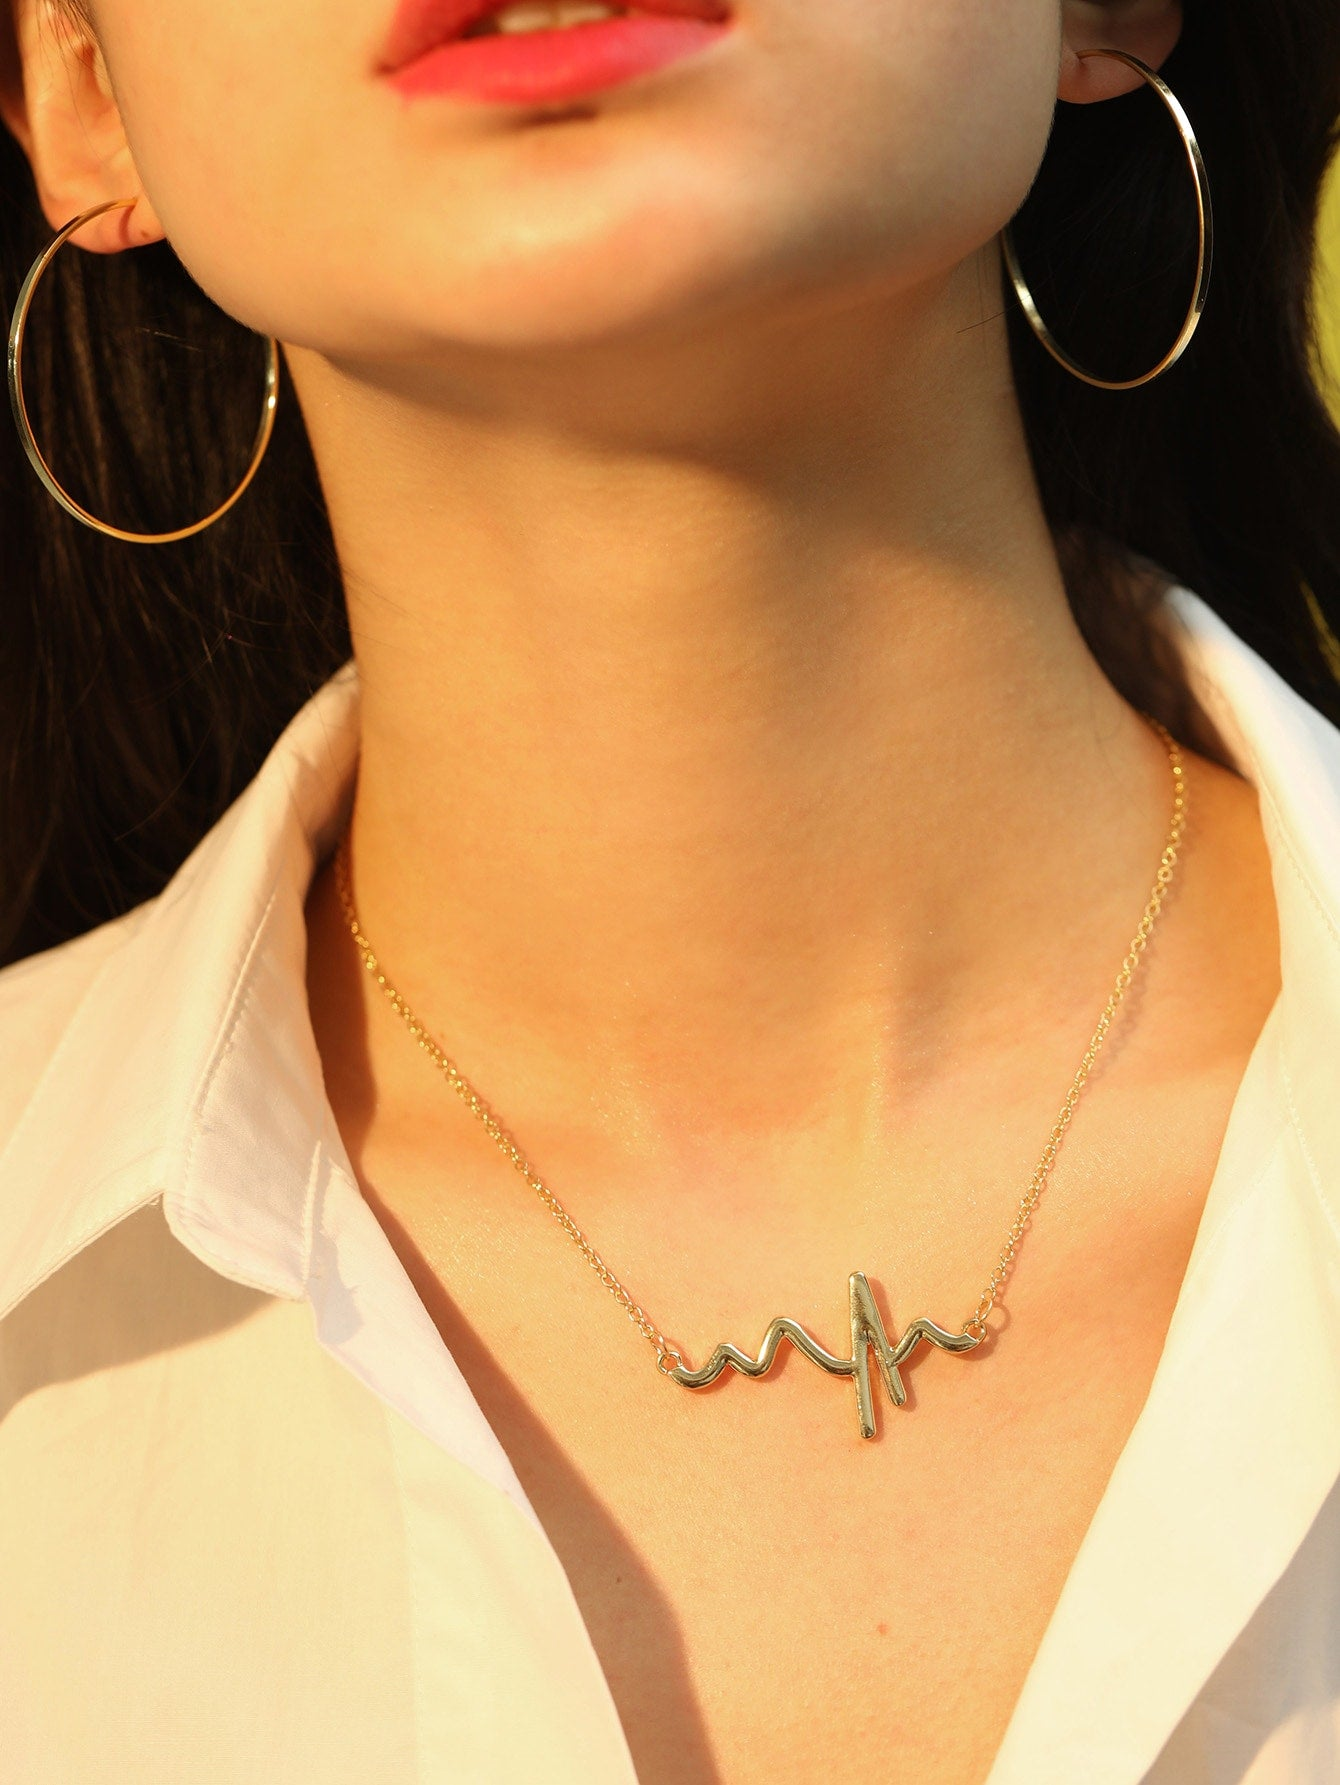 Golden Heartbeat Pendant With Chain 3pcs Necklace & Hoop Earrings